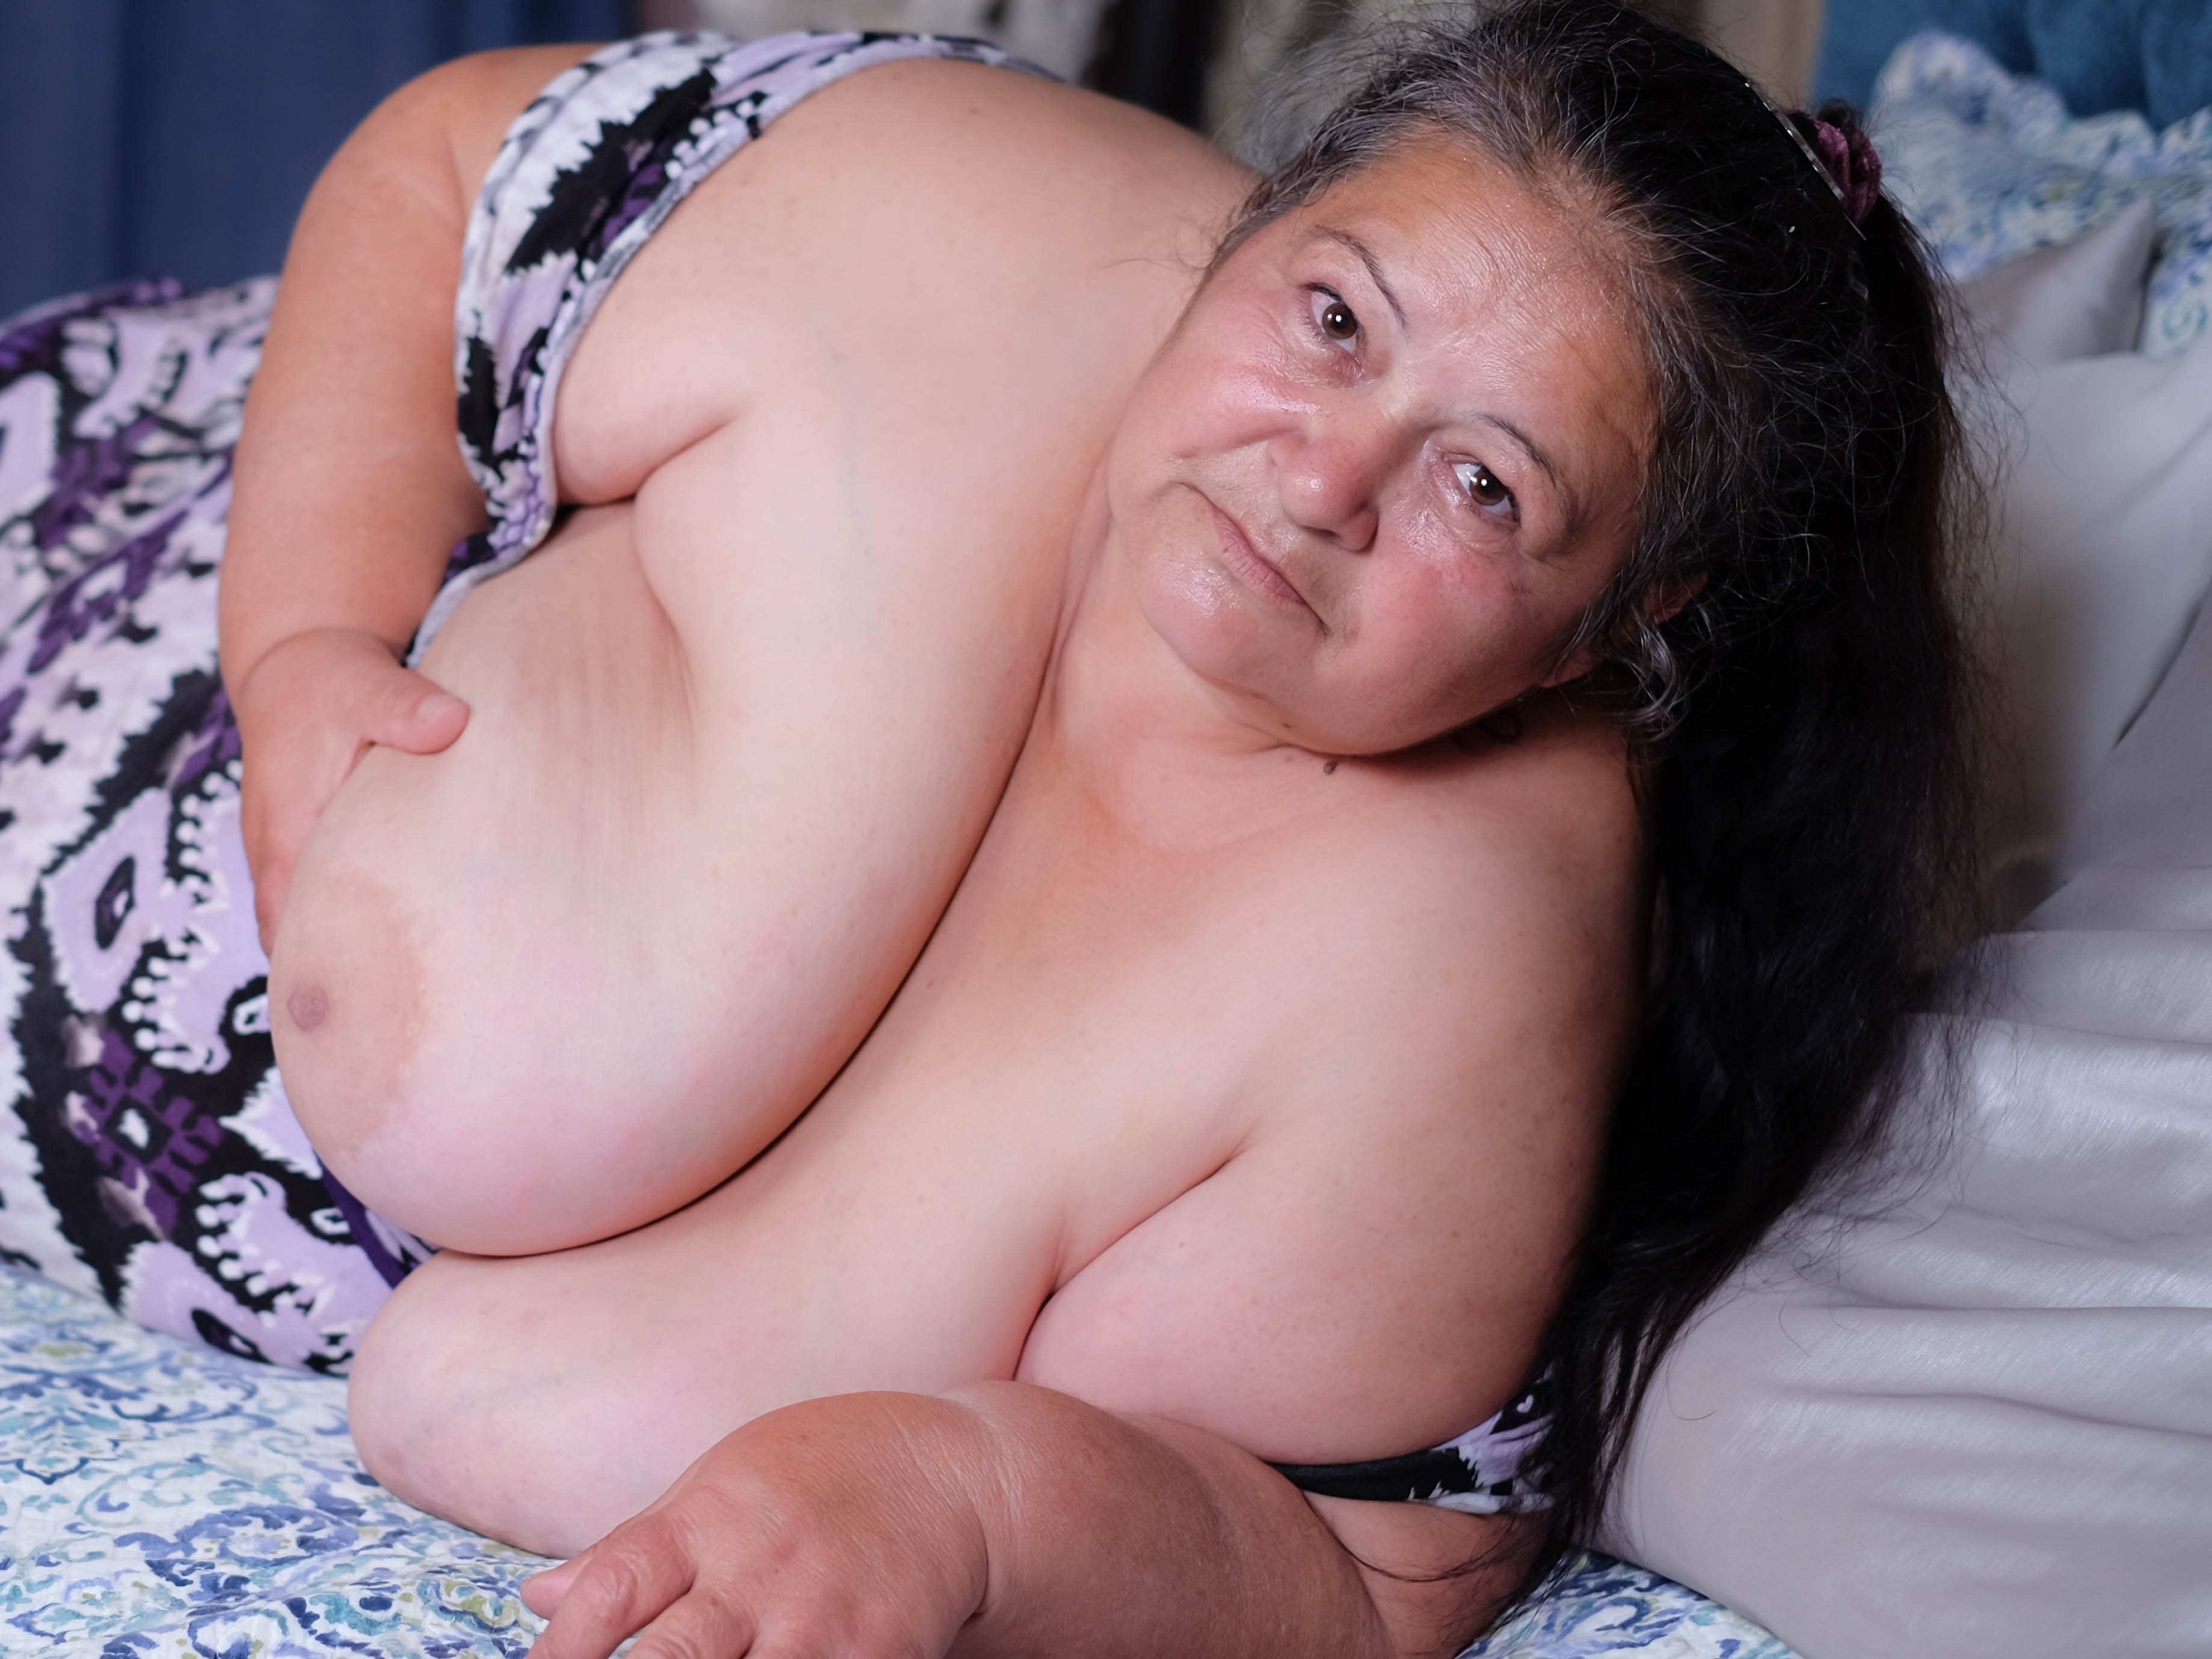 Live sex chat with BBWLadyForYou - at Sexier.com